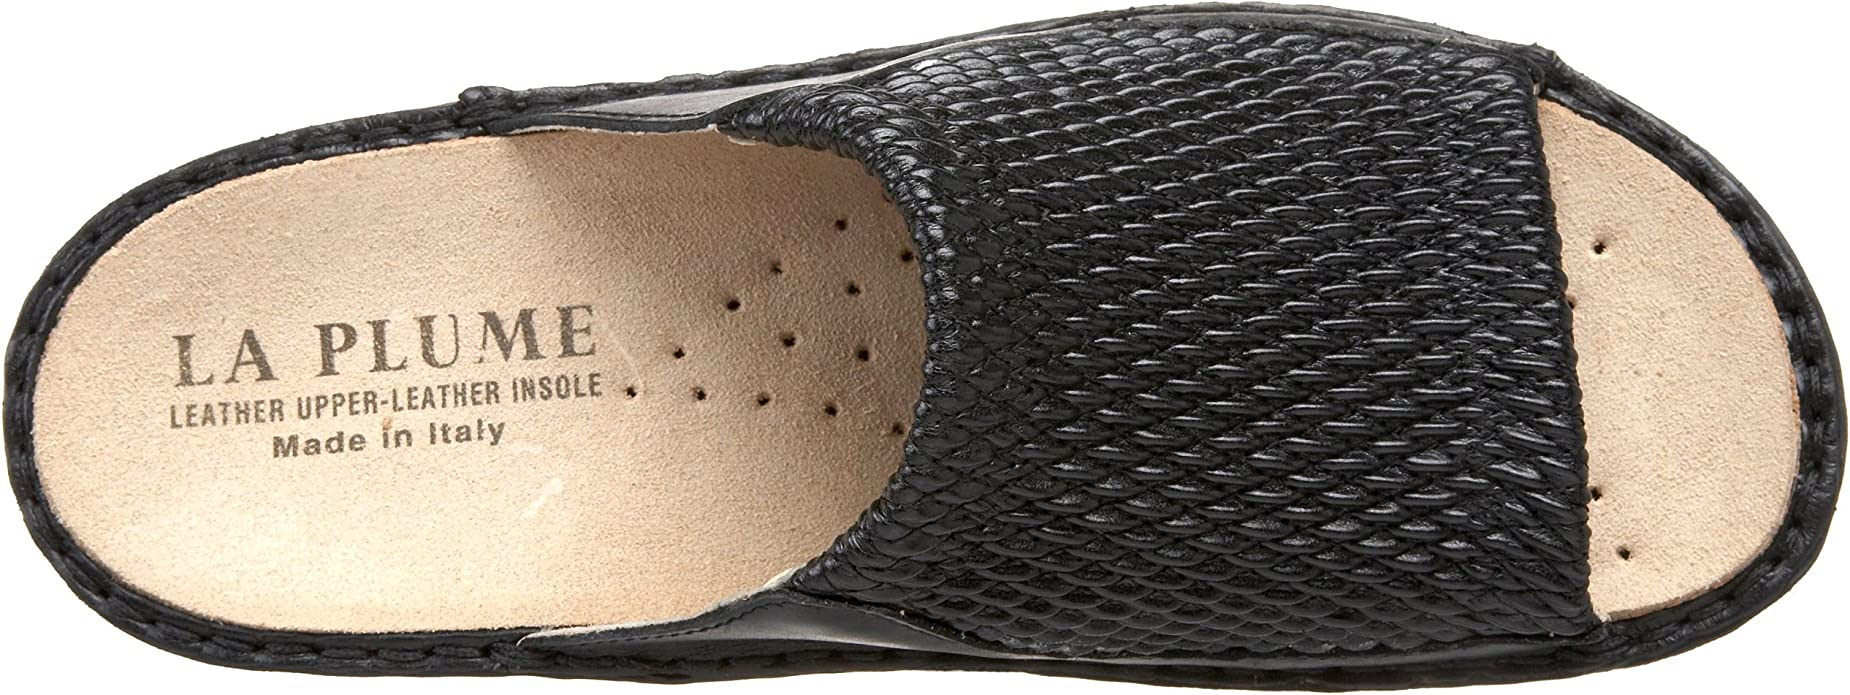 La Plume Stretch Women/'s Black Stretch//Leather Sandal with removable insole wide